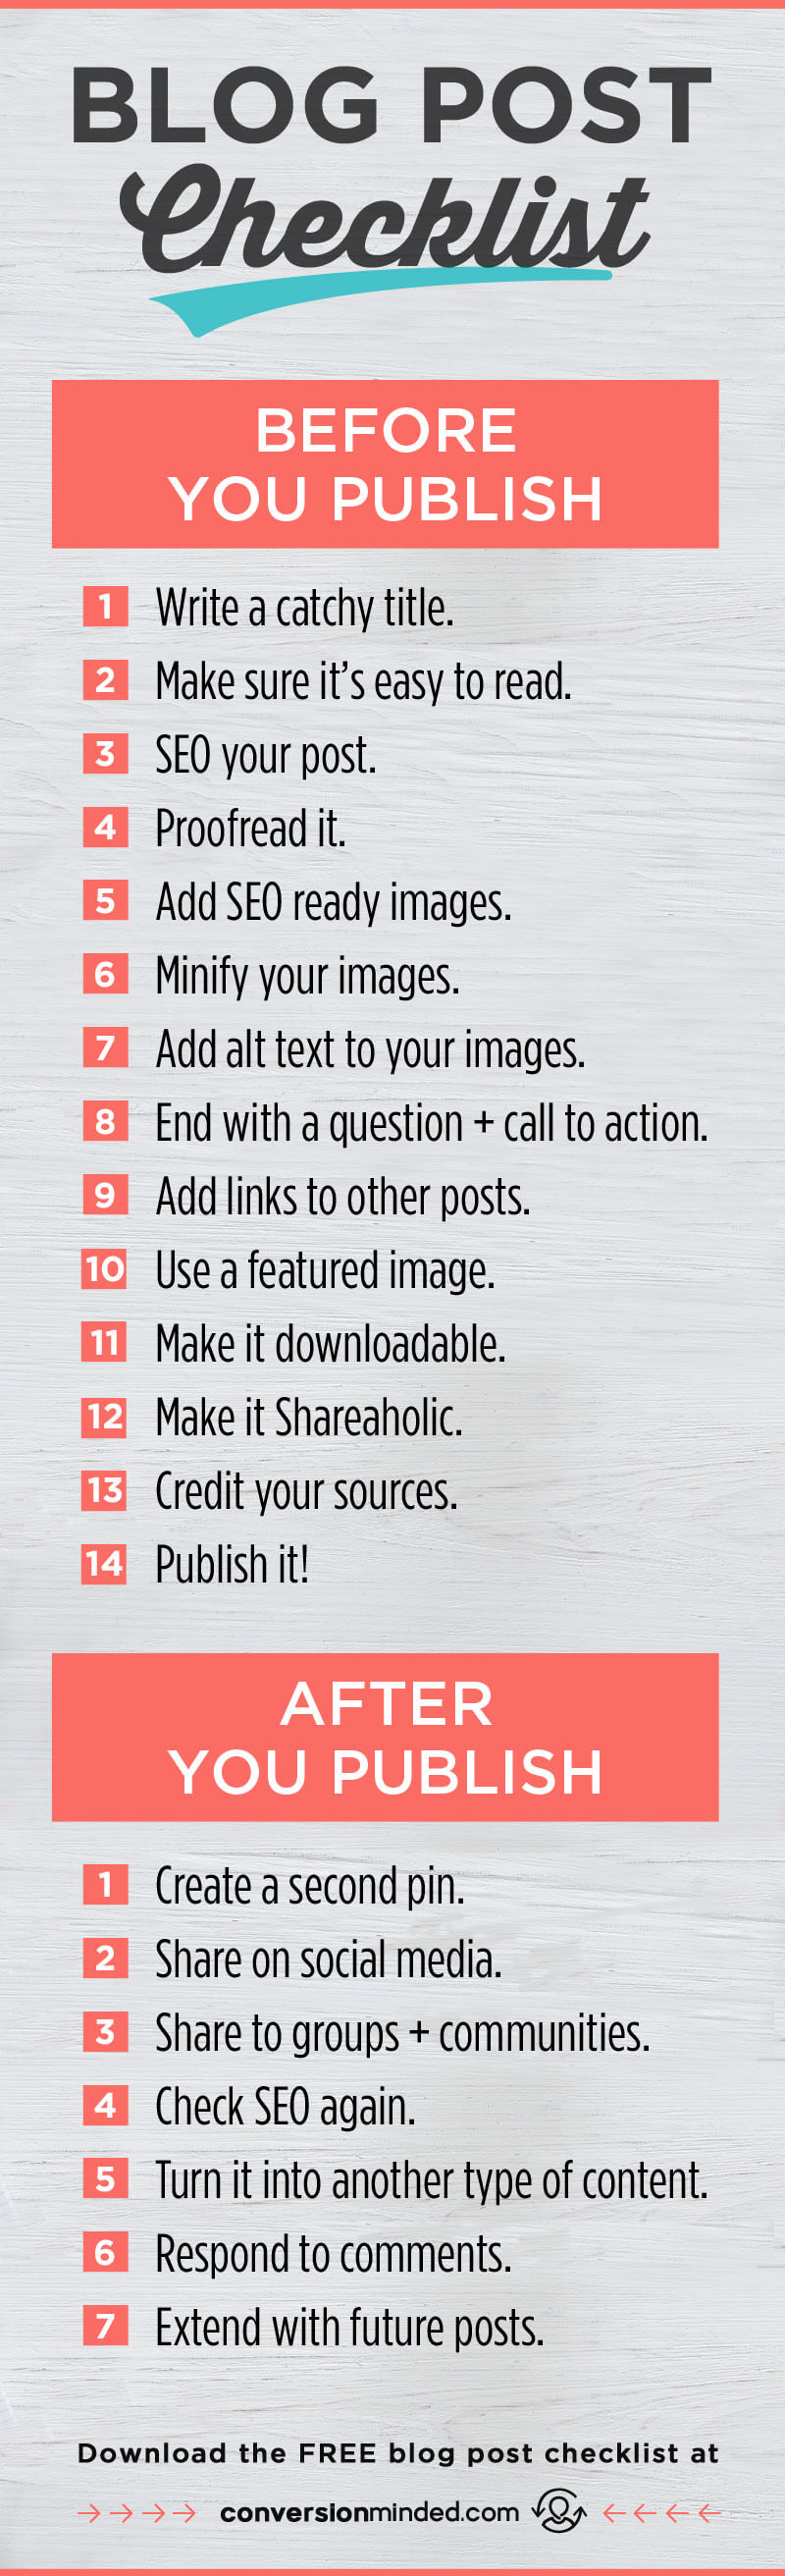 checklist for a blog